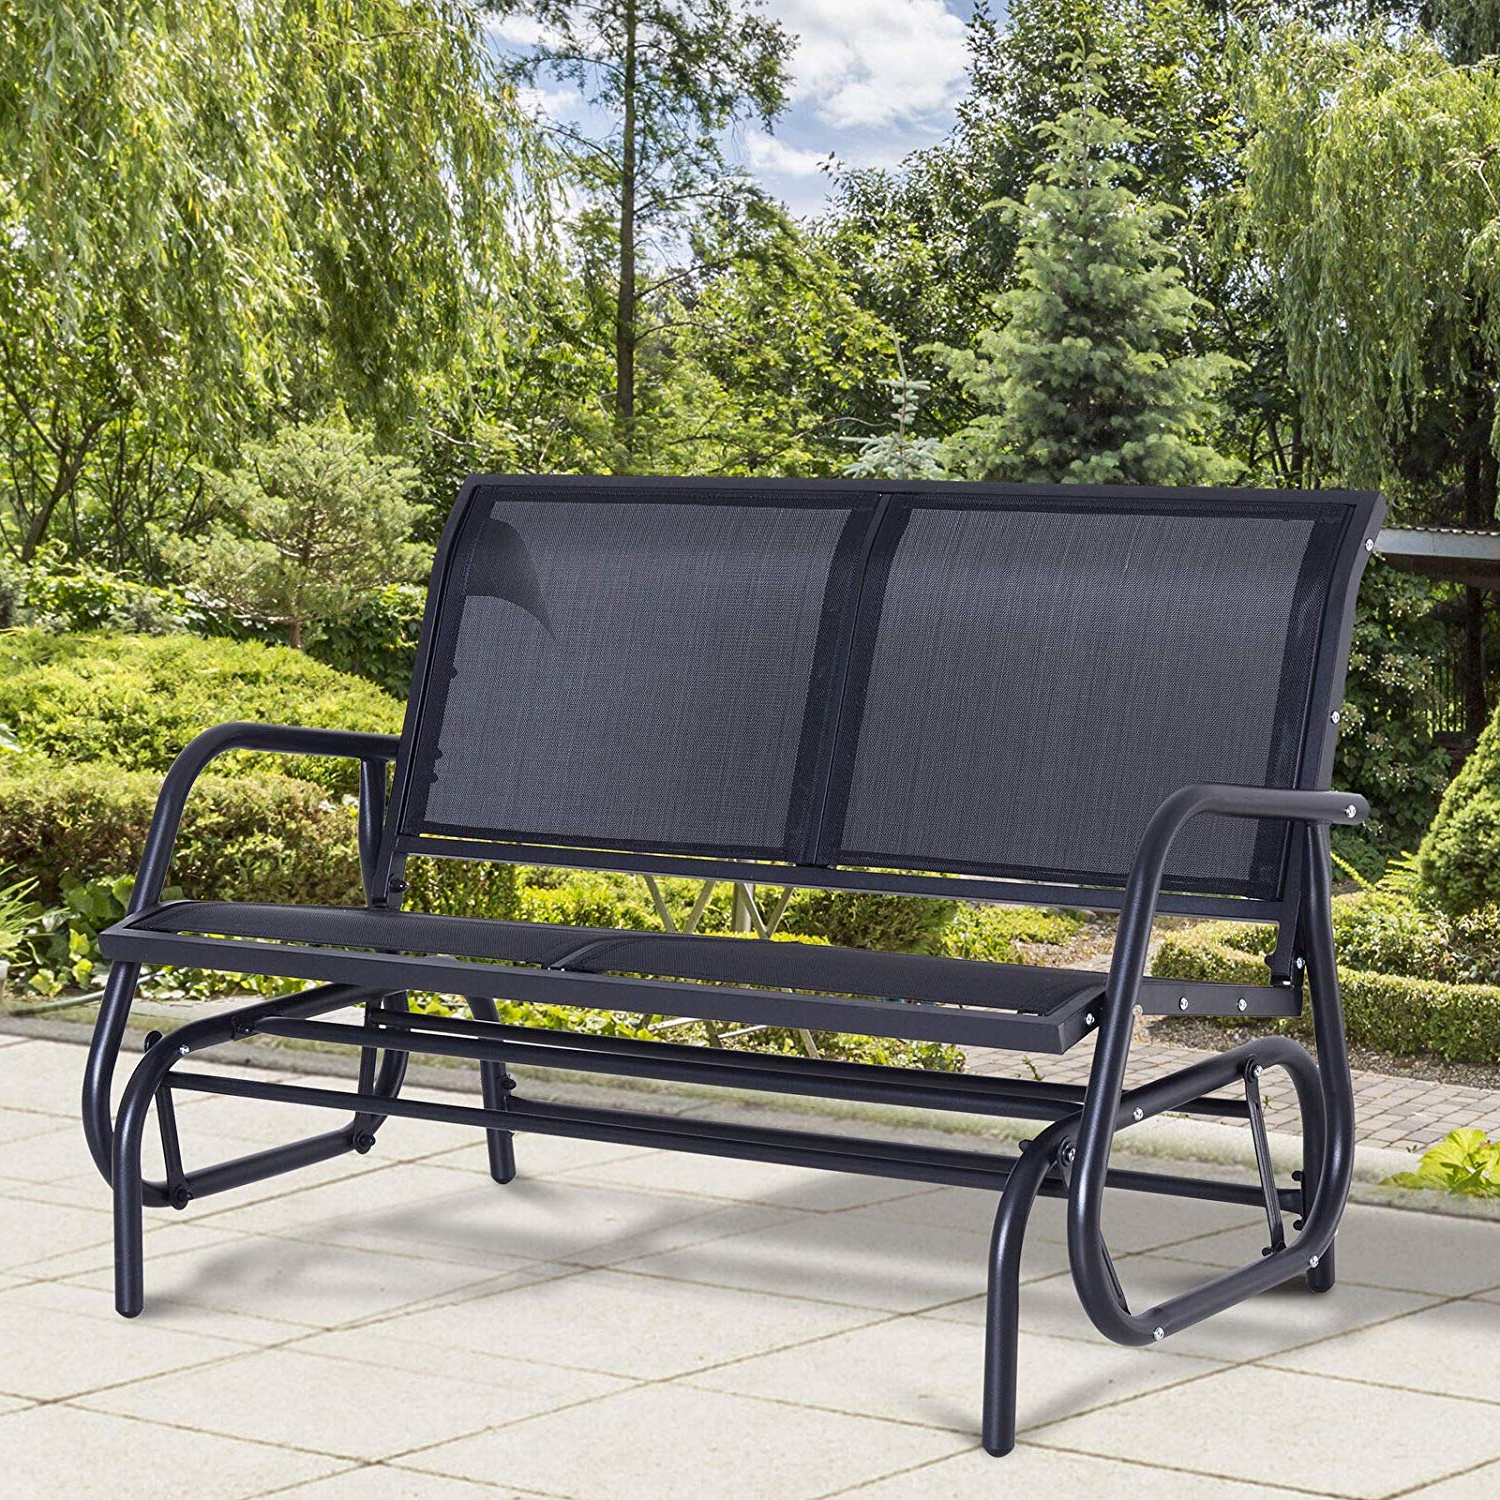 2020 Double Glider Benches With Cushion Regarding Amazon : Ana Store Casual Entertaining Flexible Quake (View 27 of 30)